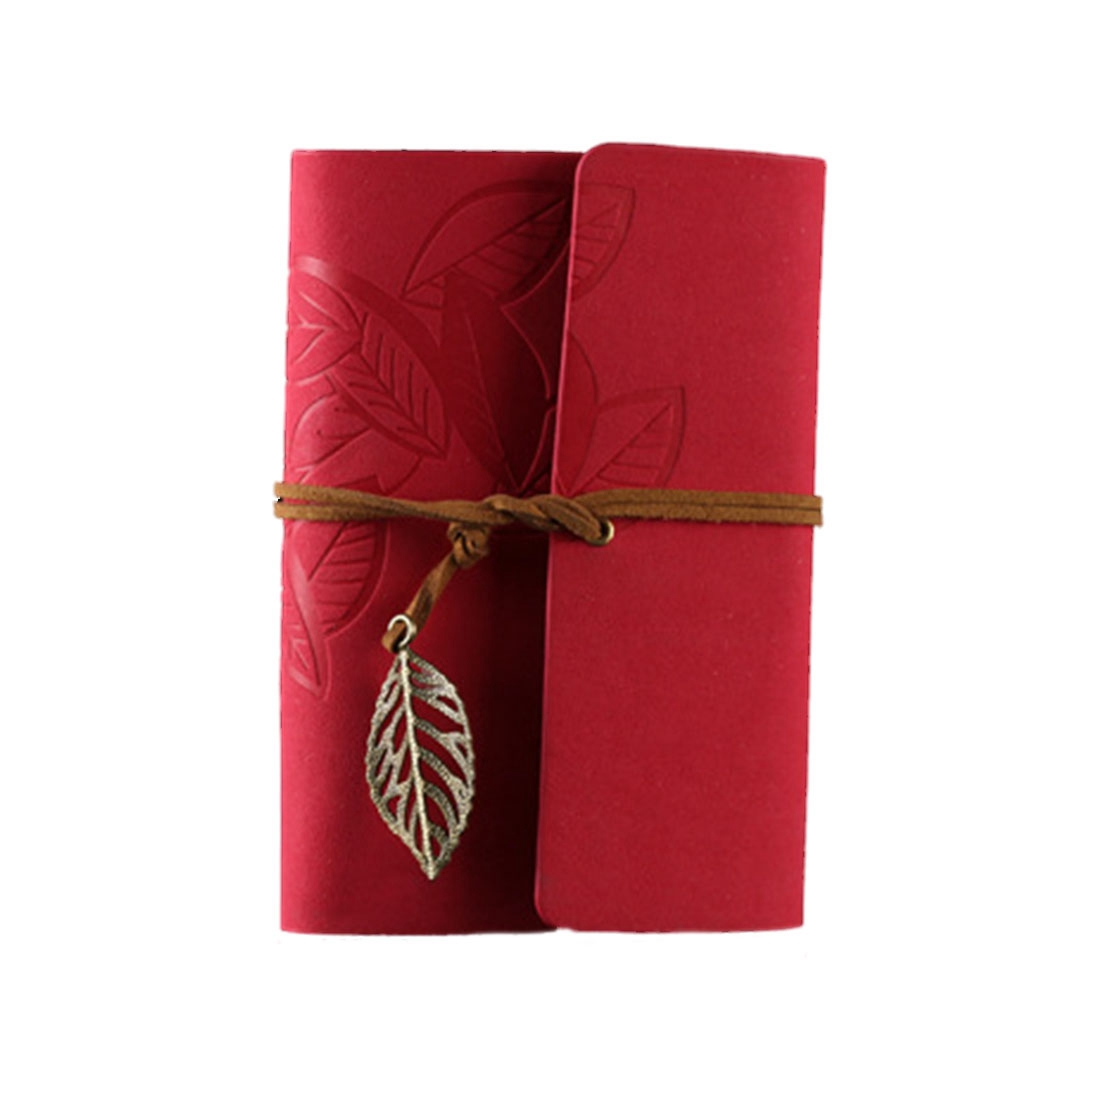 Vintage Leaf PU Leather Cover Loose Leaf Blank Notebook Journal Diary Gift (Rose red) ootdty vintage classic journal notebook diary sketchbook thick blank page leather cover 1 pcs